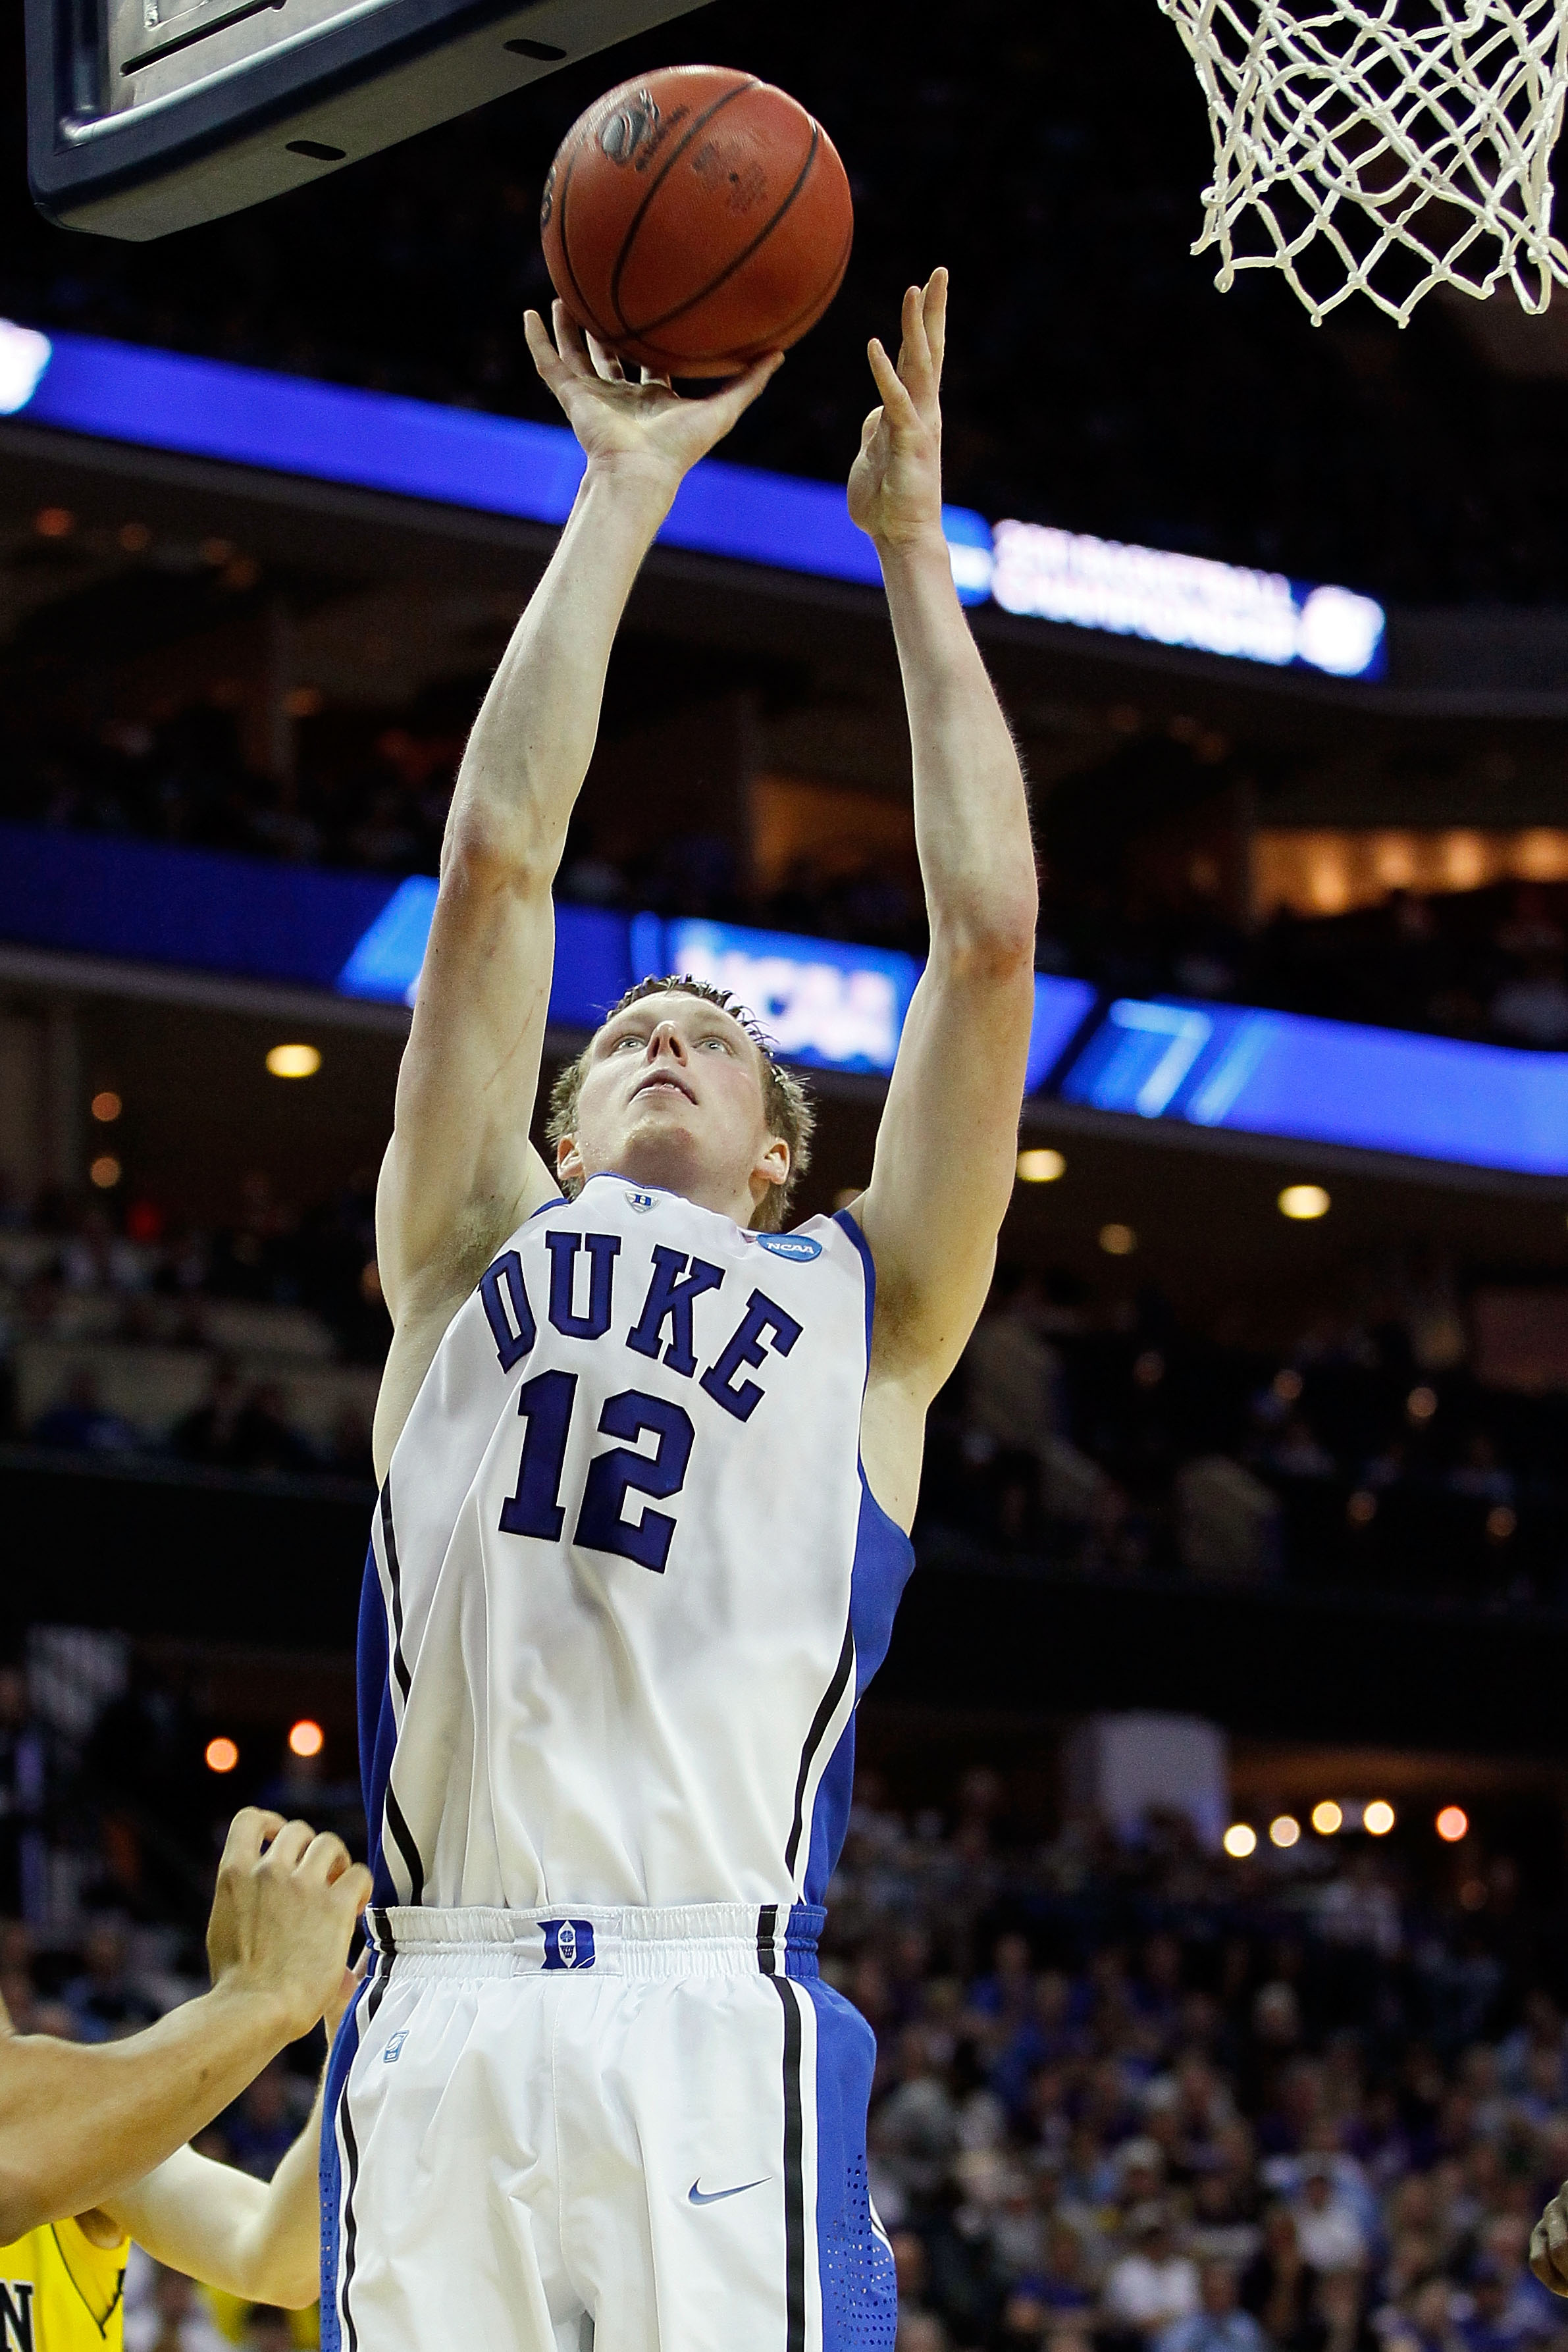 CHARLOTTE, NC - MARCH 20:  Kyle Singler #12 of the Duke Blue Devils lays the ball up while taking on the Michigan Wolverines during the third round of the 2011 NCAA men's basketball tournament at Time Warner Cable Arena on March 20, 2011 in Charlotte, Nor